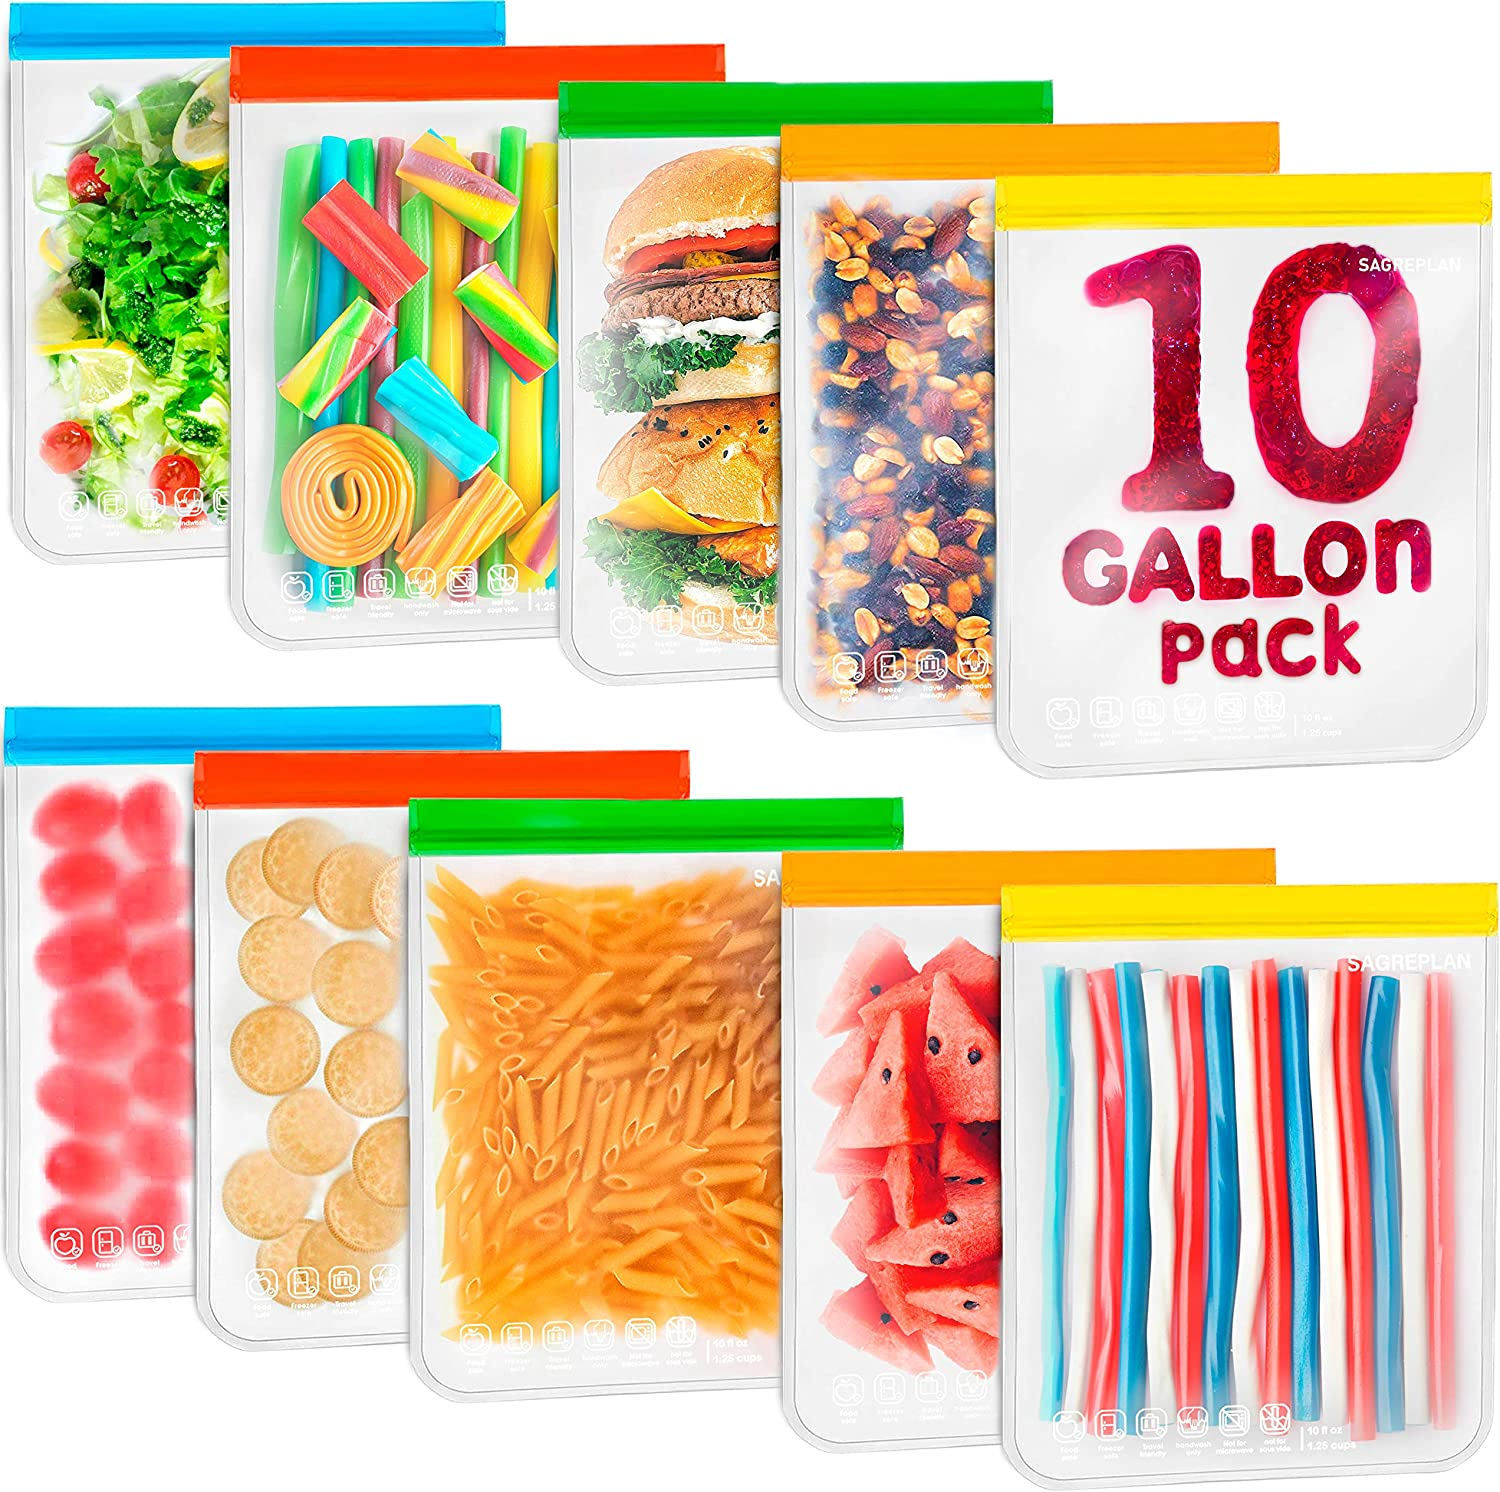 10 Gallon Reusable Storage Bags - Extra Large Leakproof Thick Reusable Freezer Bags with Seal Lock - Eco friendly Non Plastic & Silicone Bags for Food Storage for Sandwich, Snack, Lunch